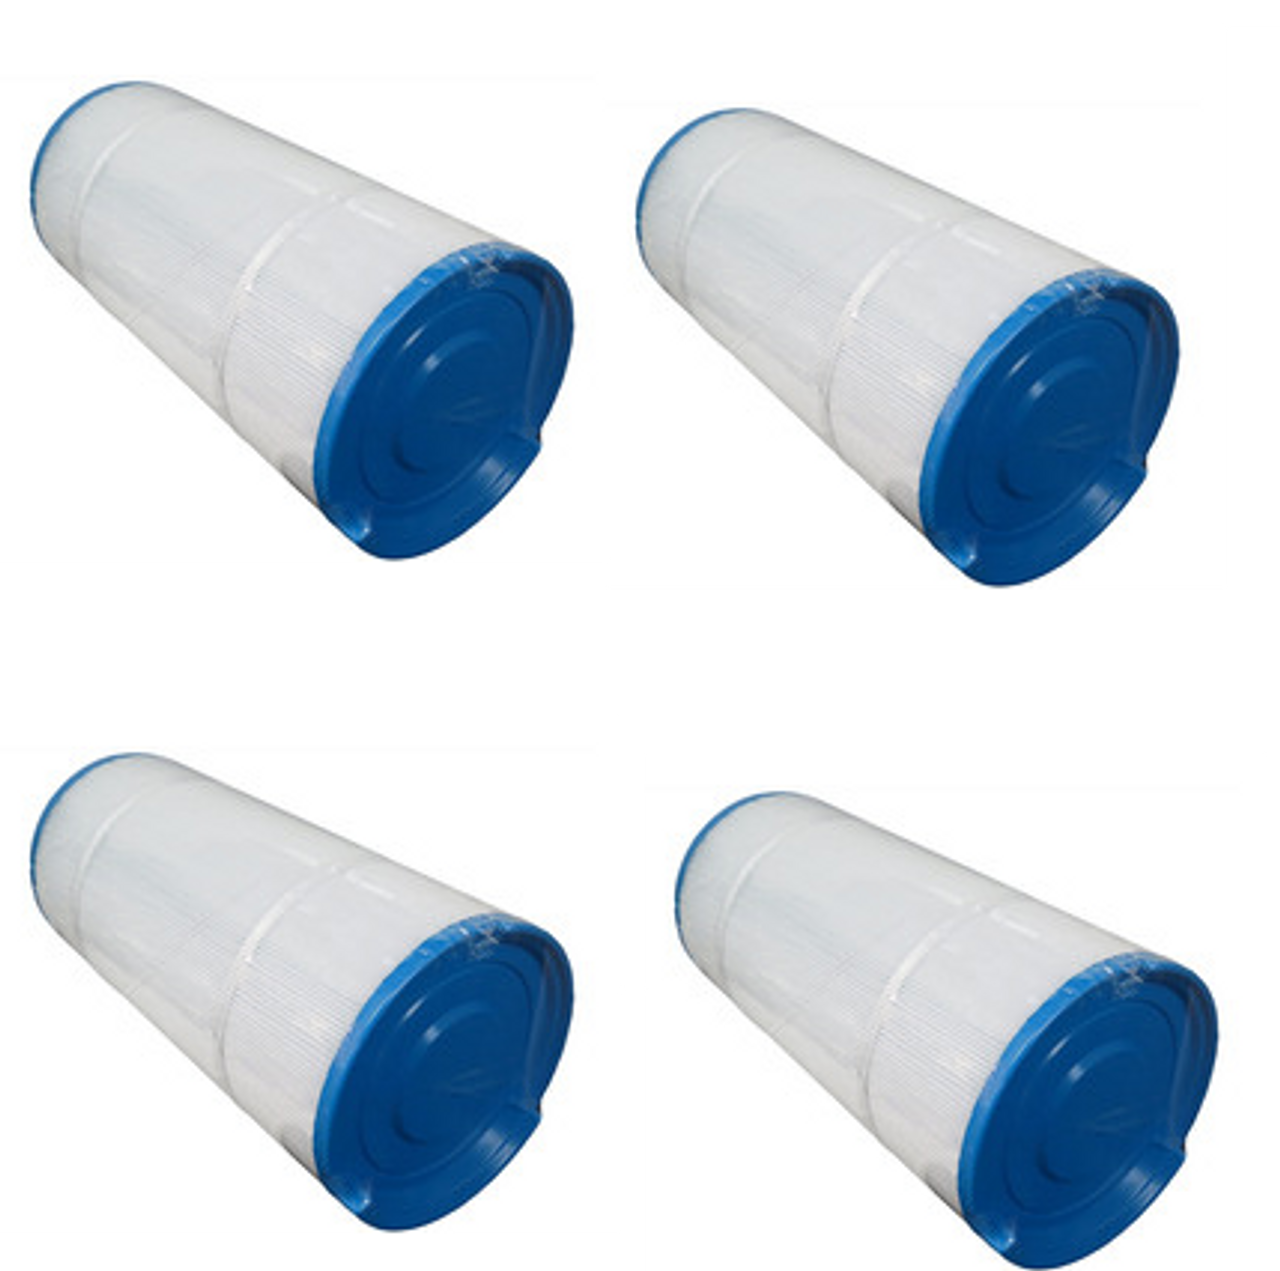 Replacement Filter for Sundance Spas 120 MicroClean 2 part number 6540-507 by Spa and Sauna Parts